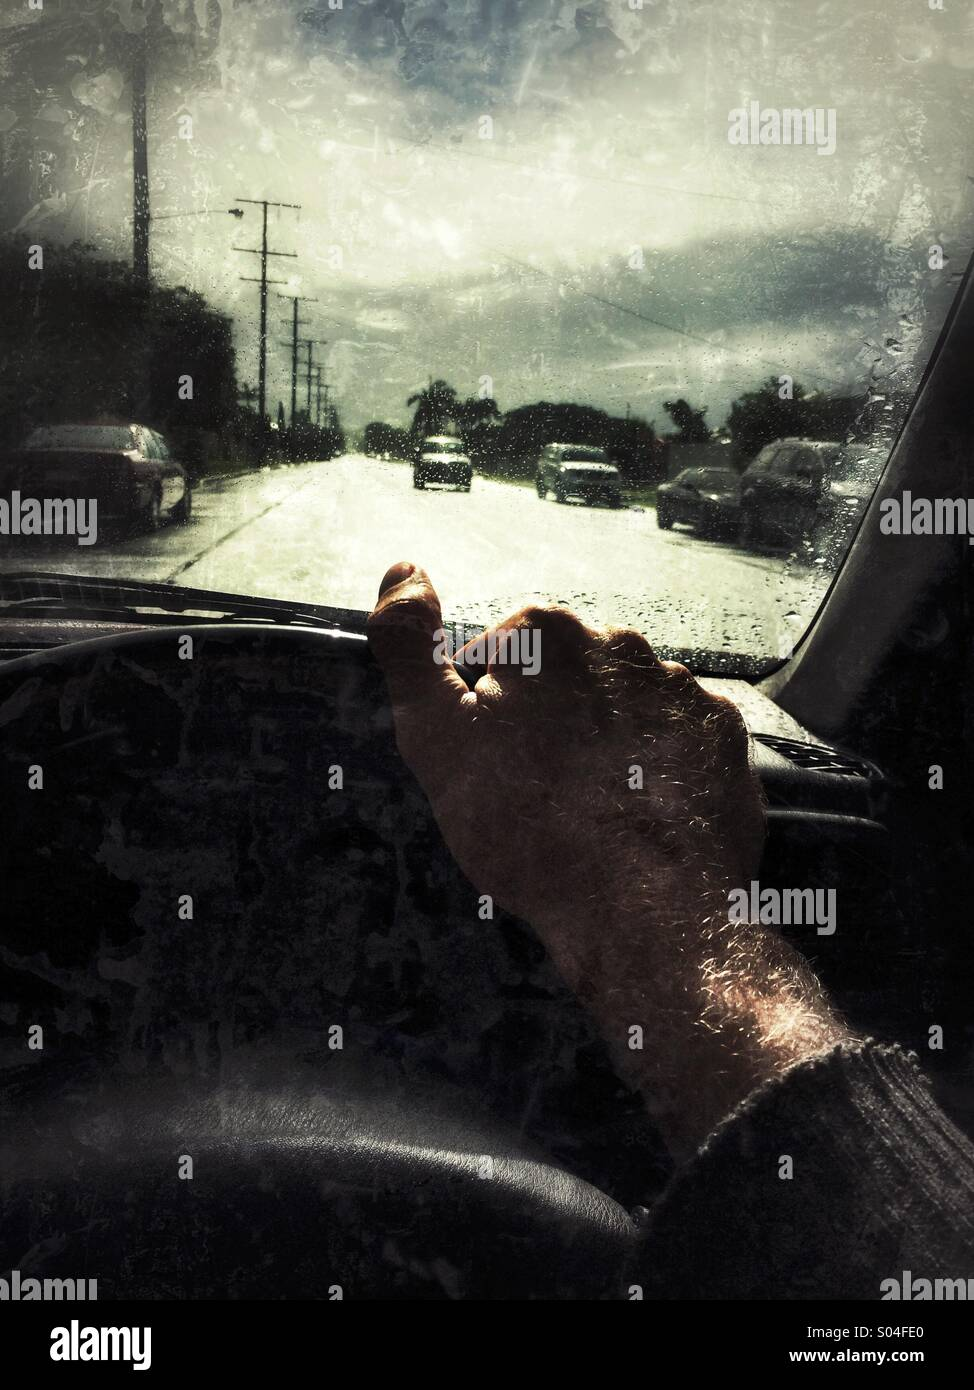 Point of view of driver - Stock Image